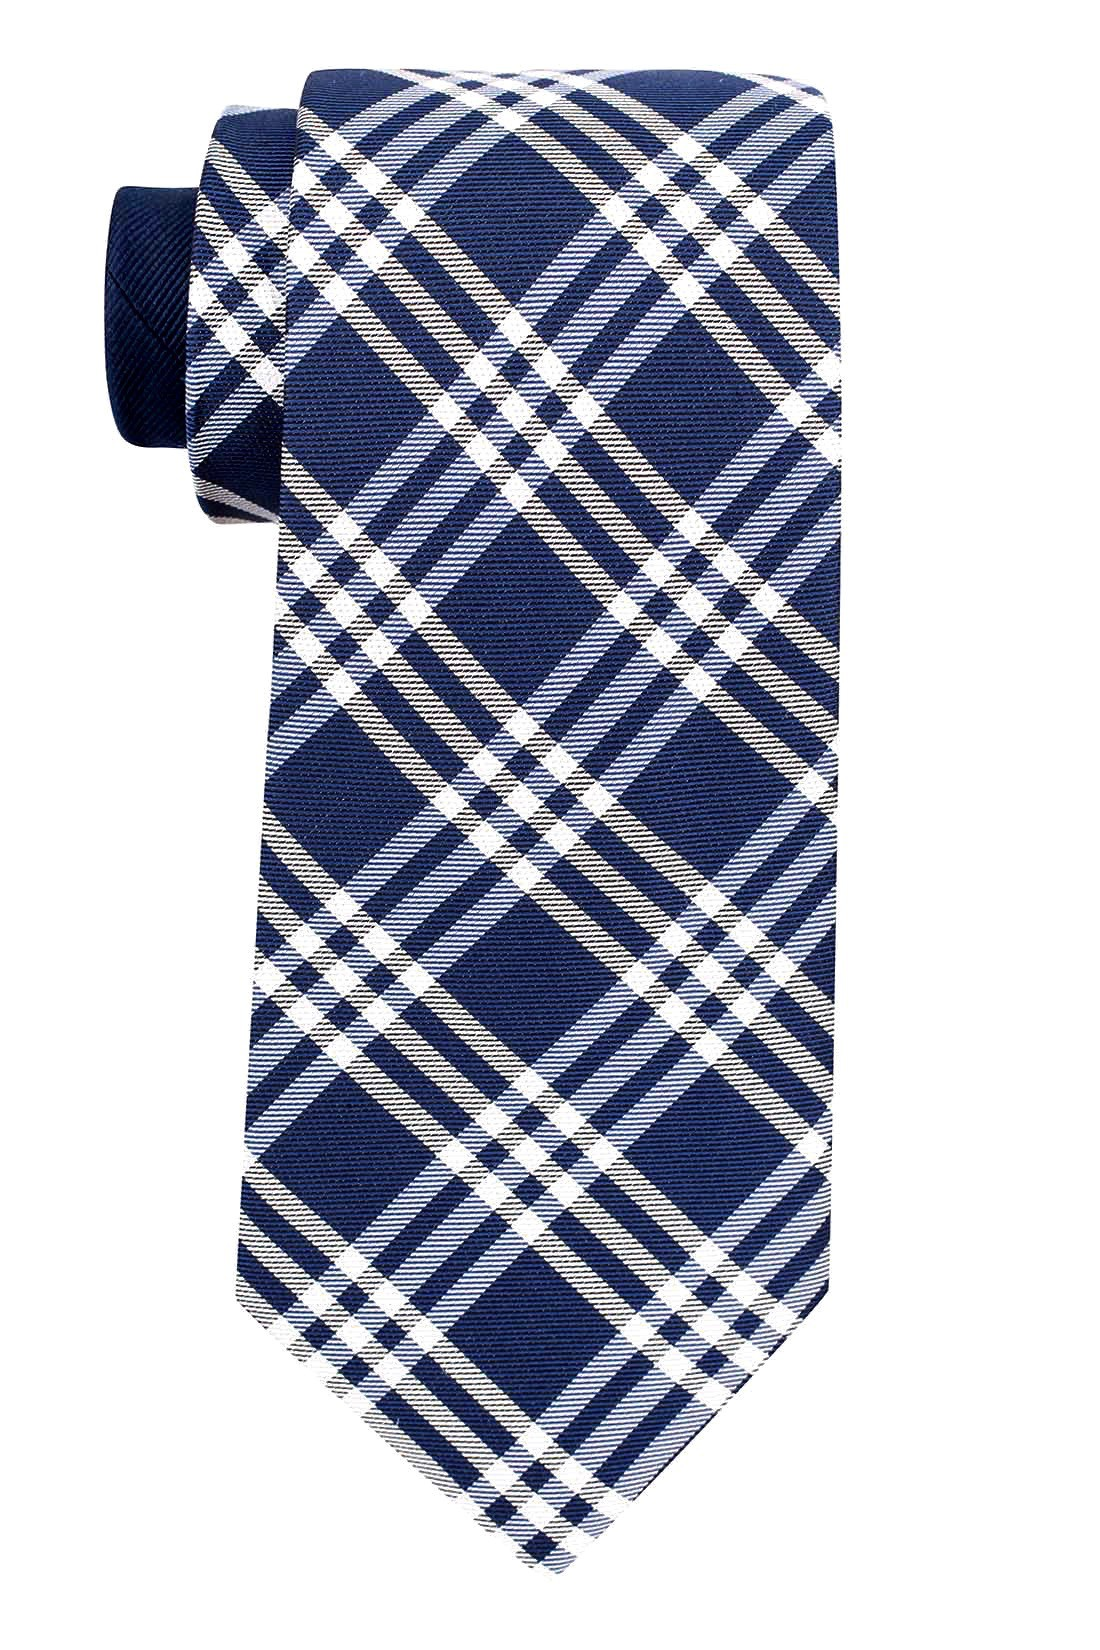 Pittsfield Plaid Blue and White 100% Silk Necktie